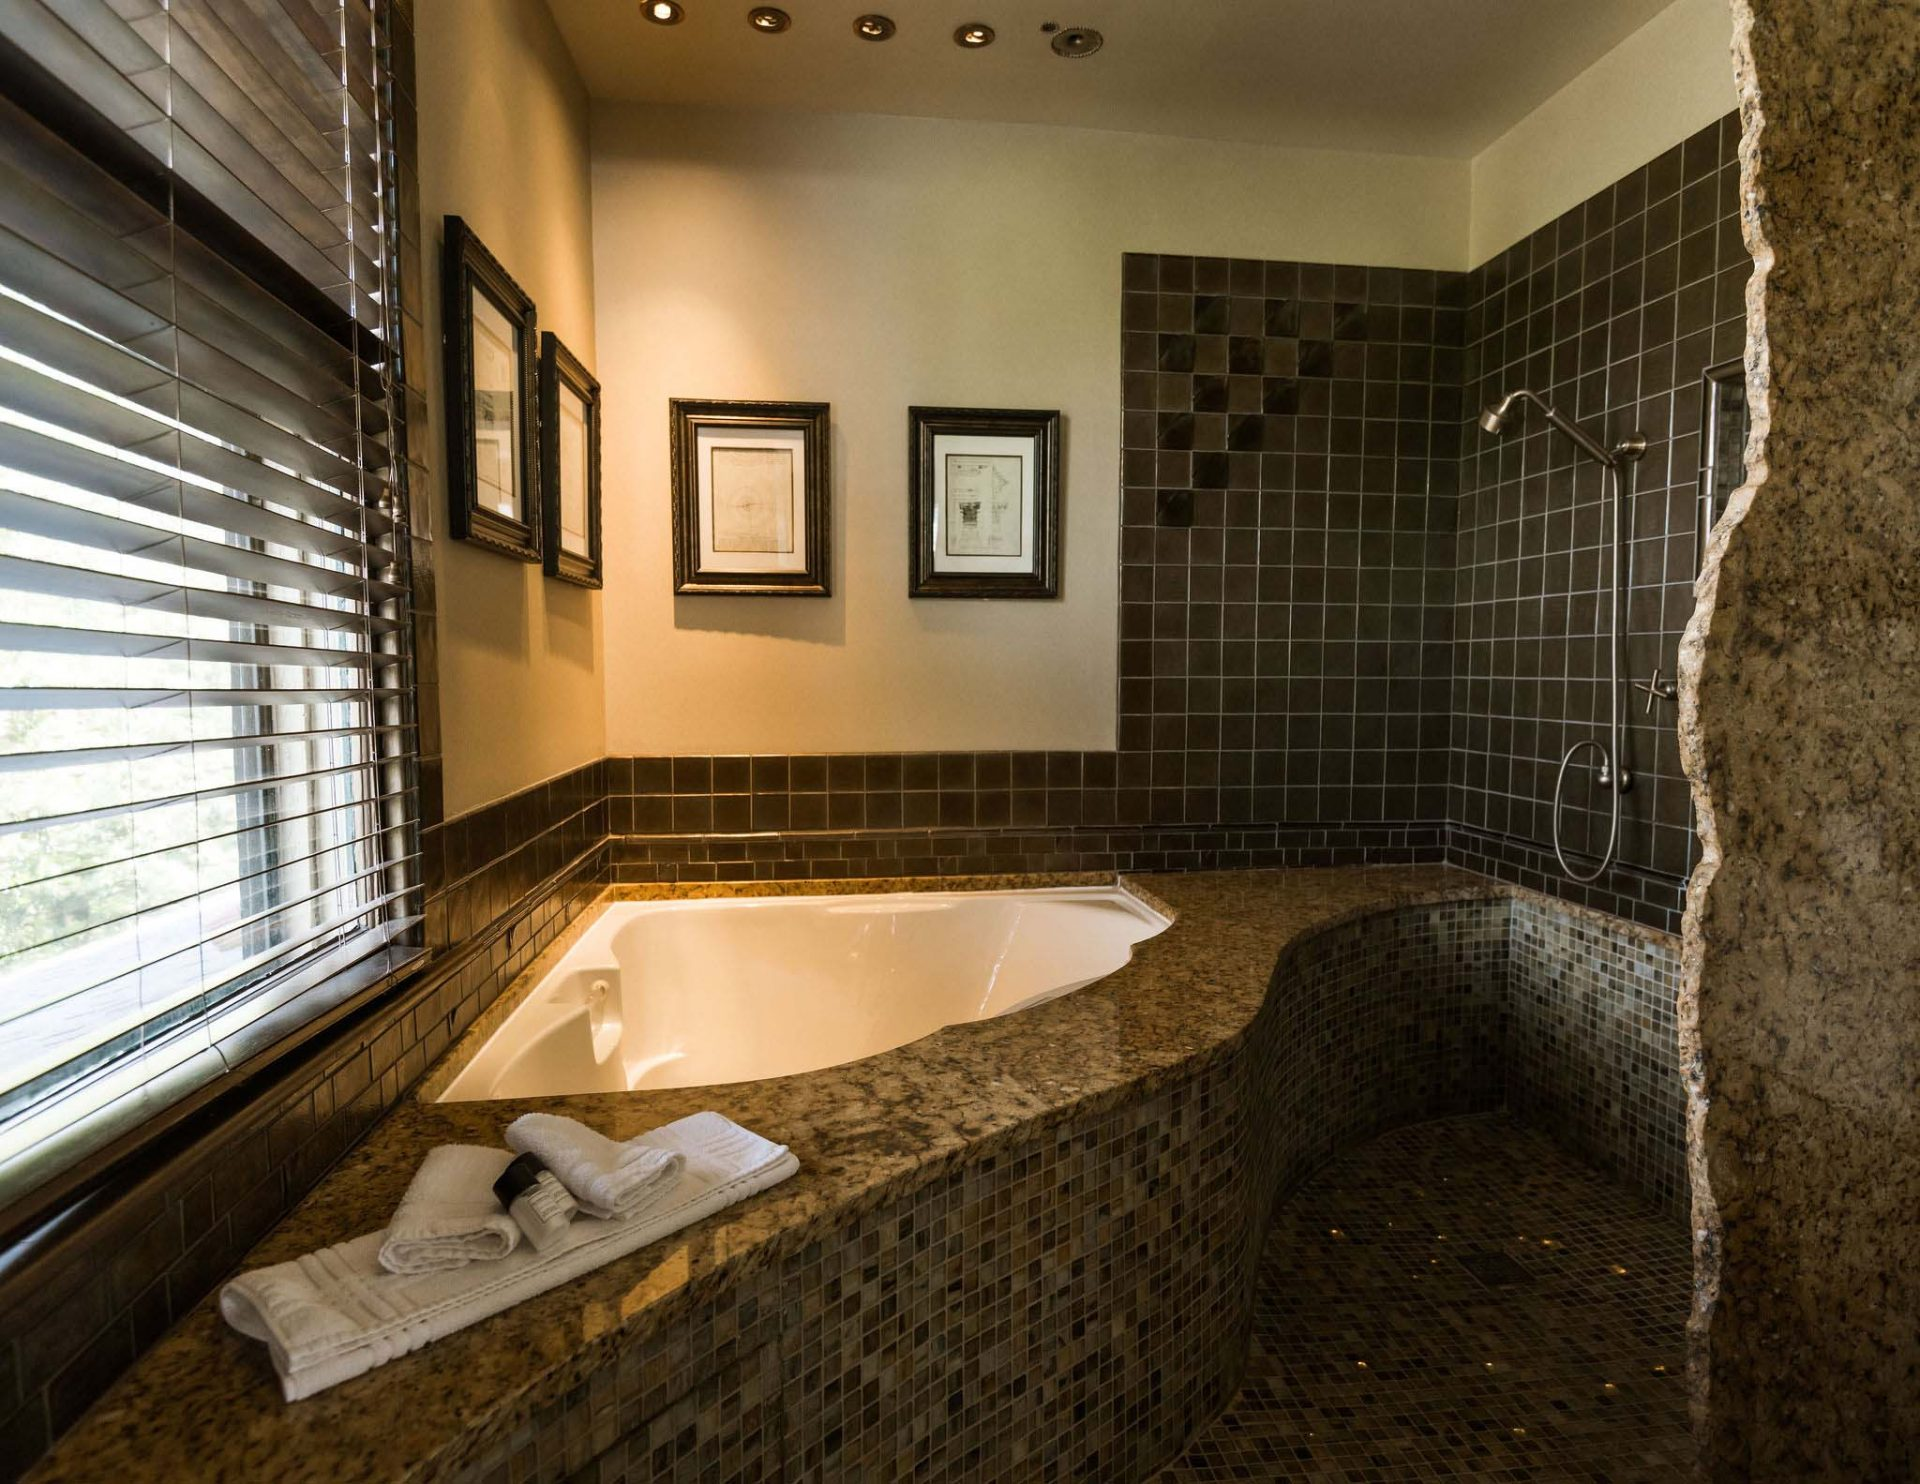 A two-Person jetted airbath tub with chromatherapy lights, marble countertops, and tiled floors. A romantic bath for a romantic Asheville getaway, captured in a dimmed light.